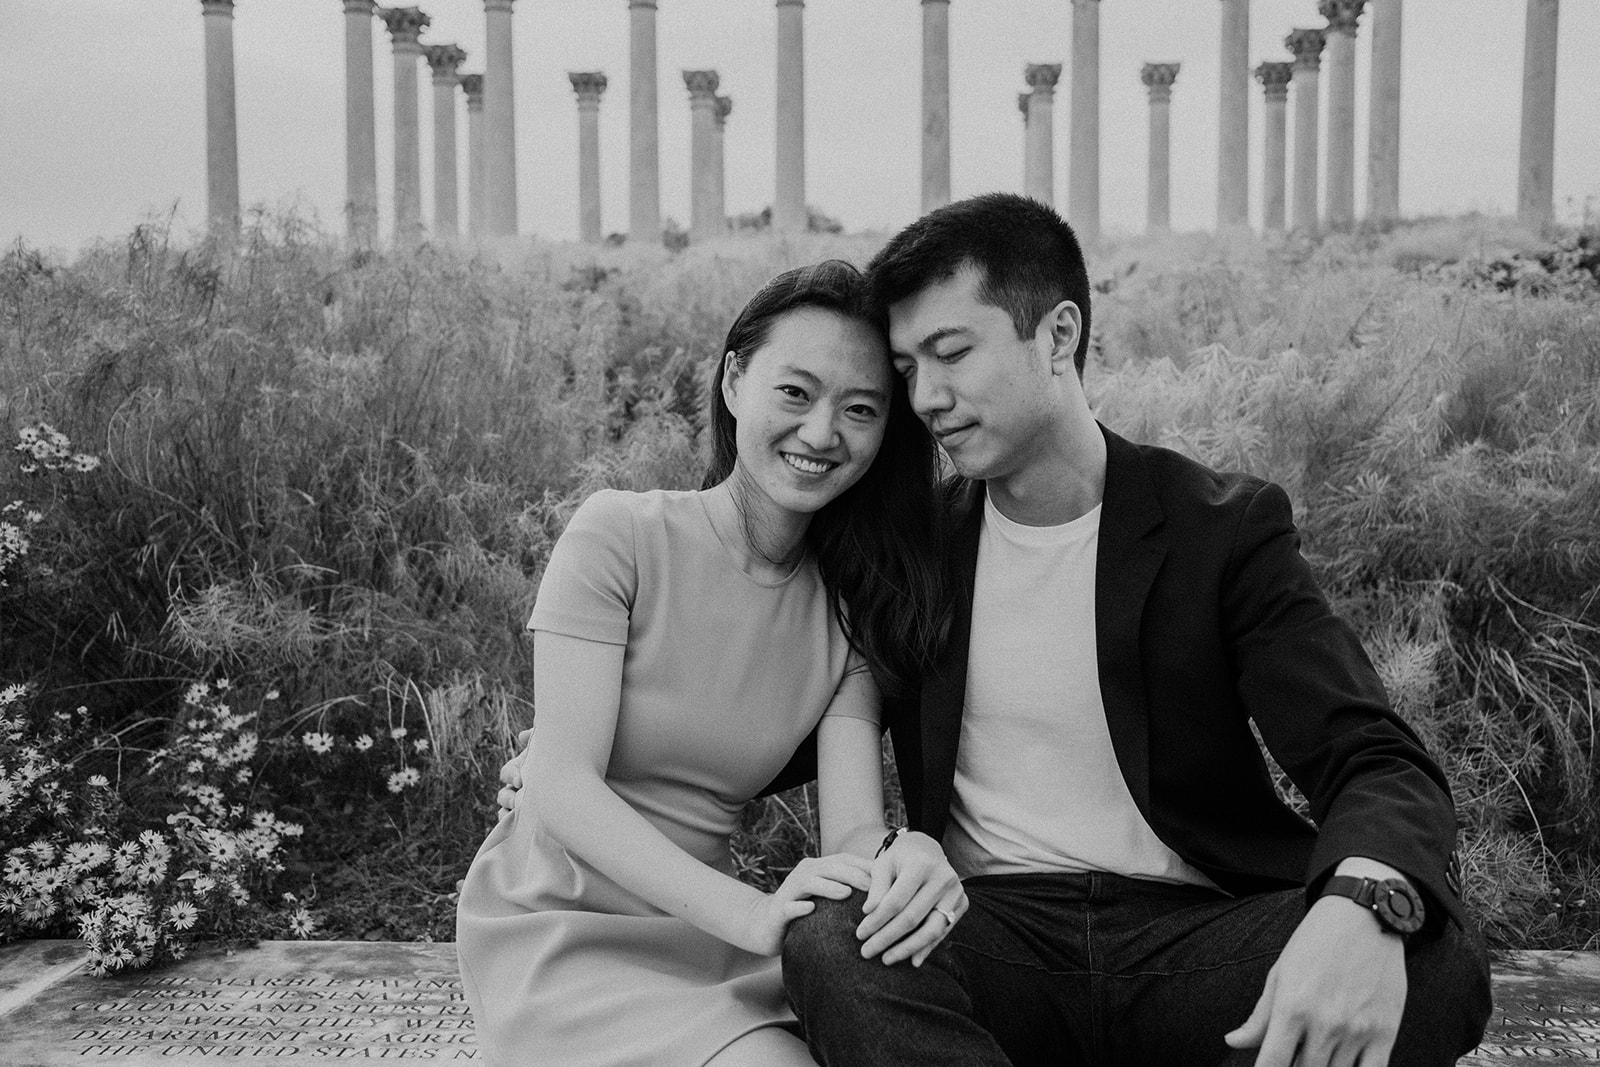 A woman rests her head on her fiancé's shoulder near the pillars at the National Arboretum.